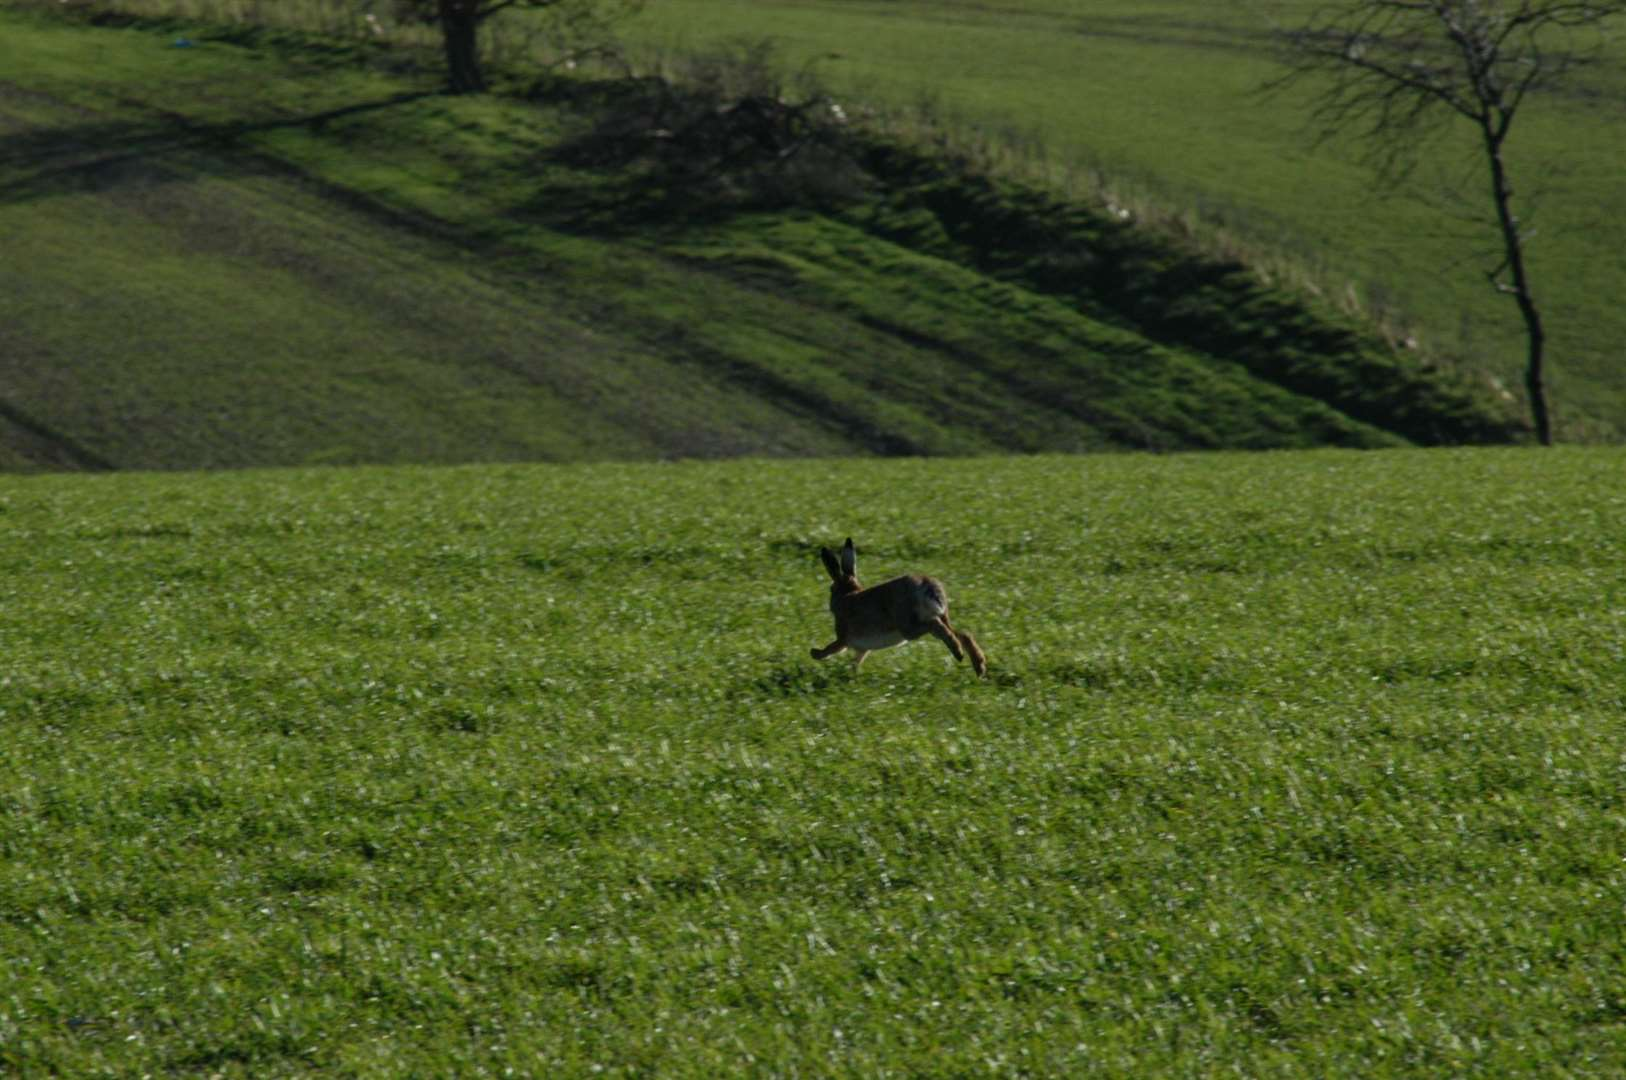 Norfolk Police is warning it will take strong action against anyone taking part in hare coursing